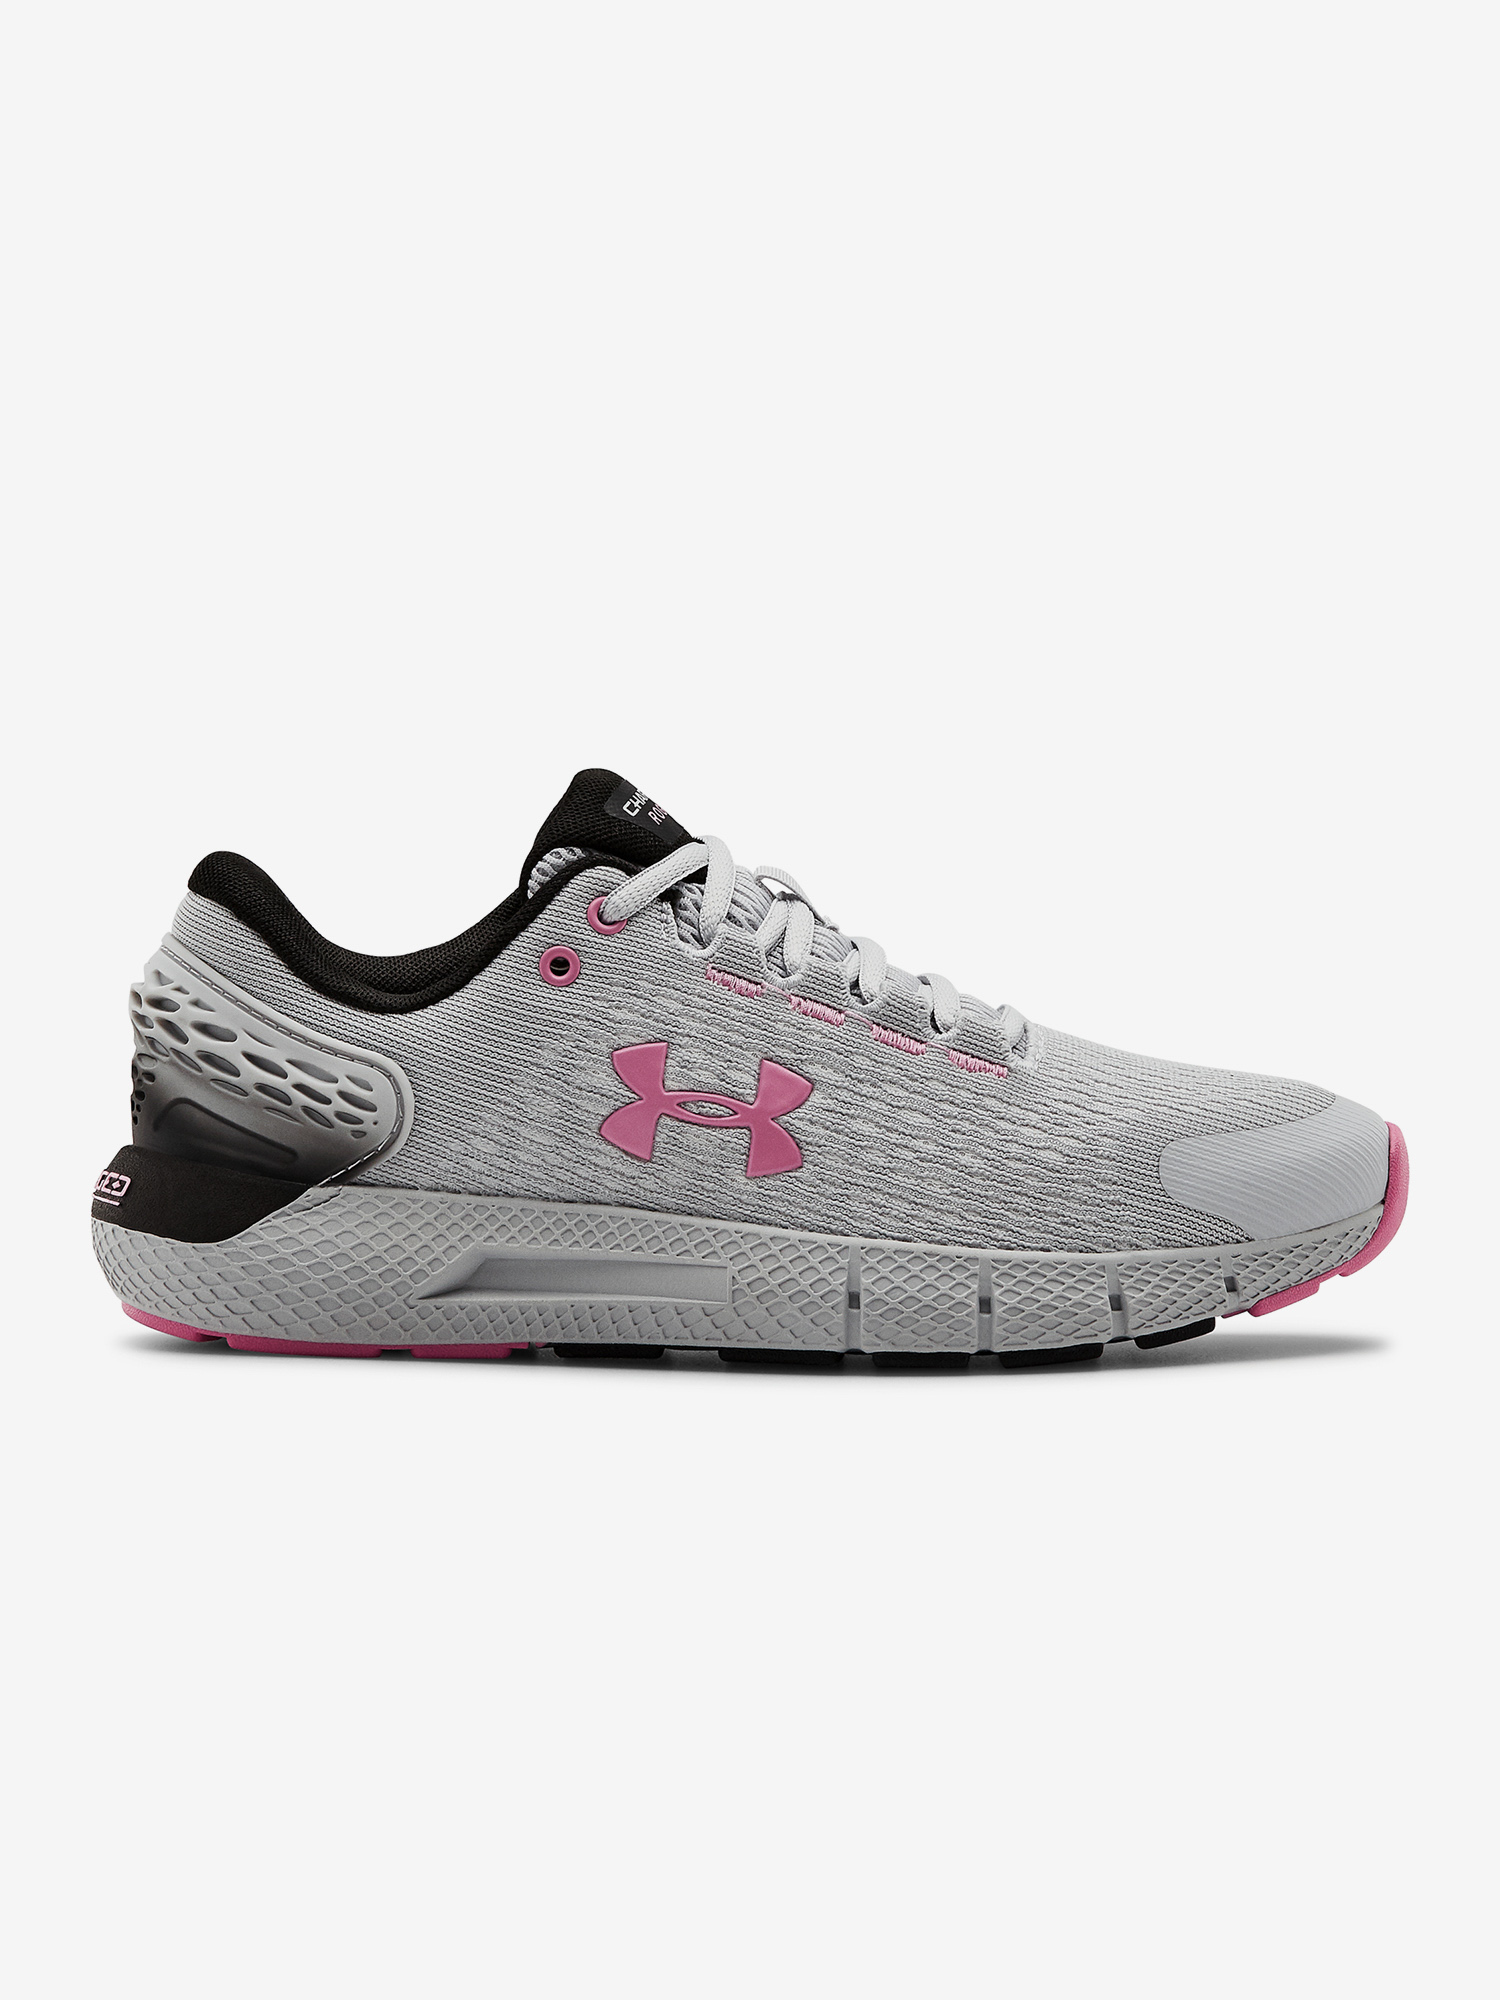 Boty Under Armour W Charged Rogue 2 (1)